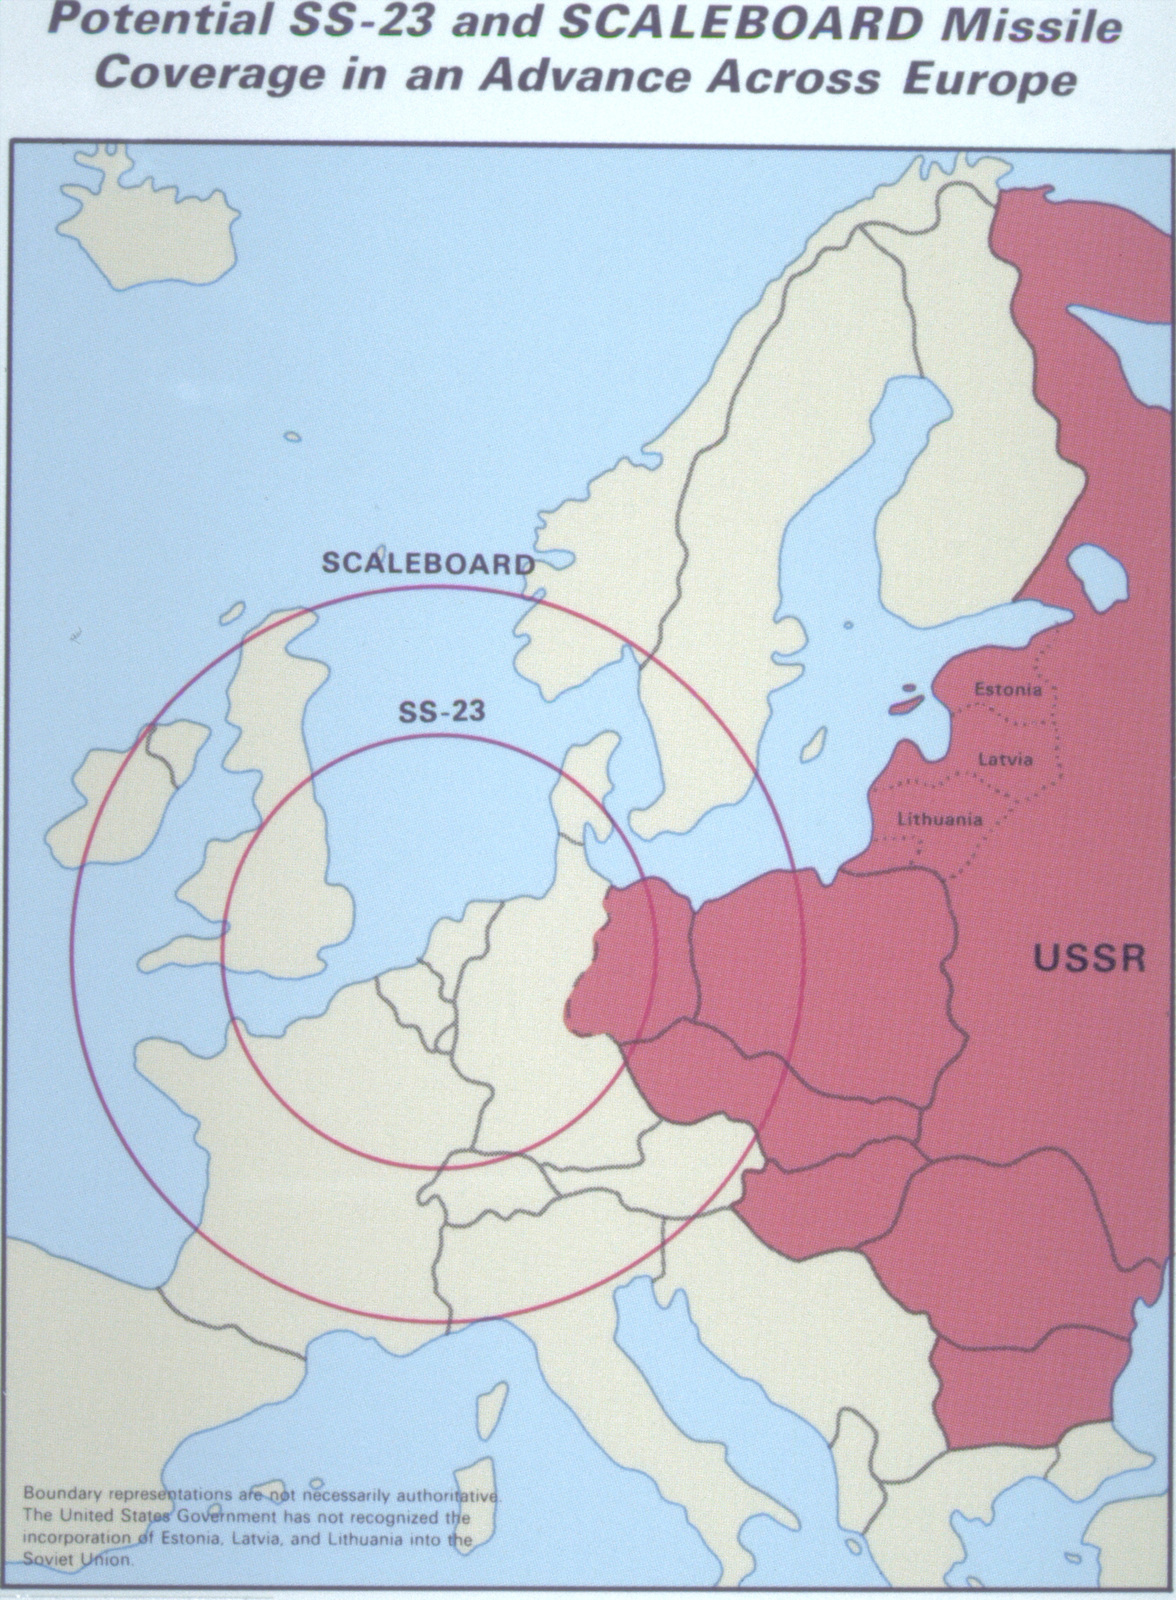 A map depicting potential Soviet SS-23 and Scaleboard ...